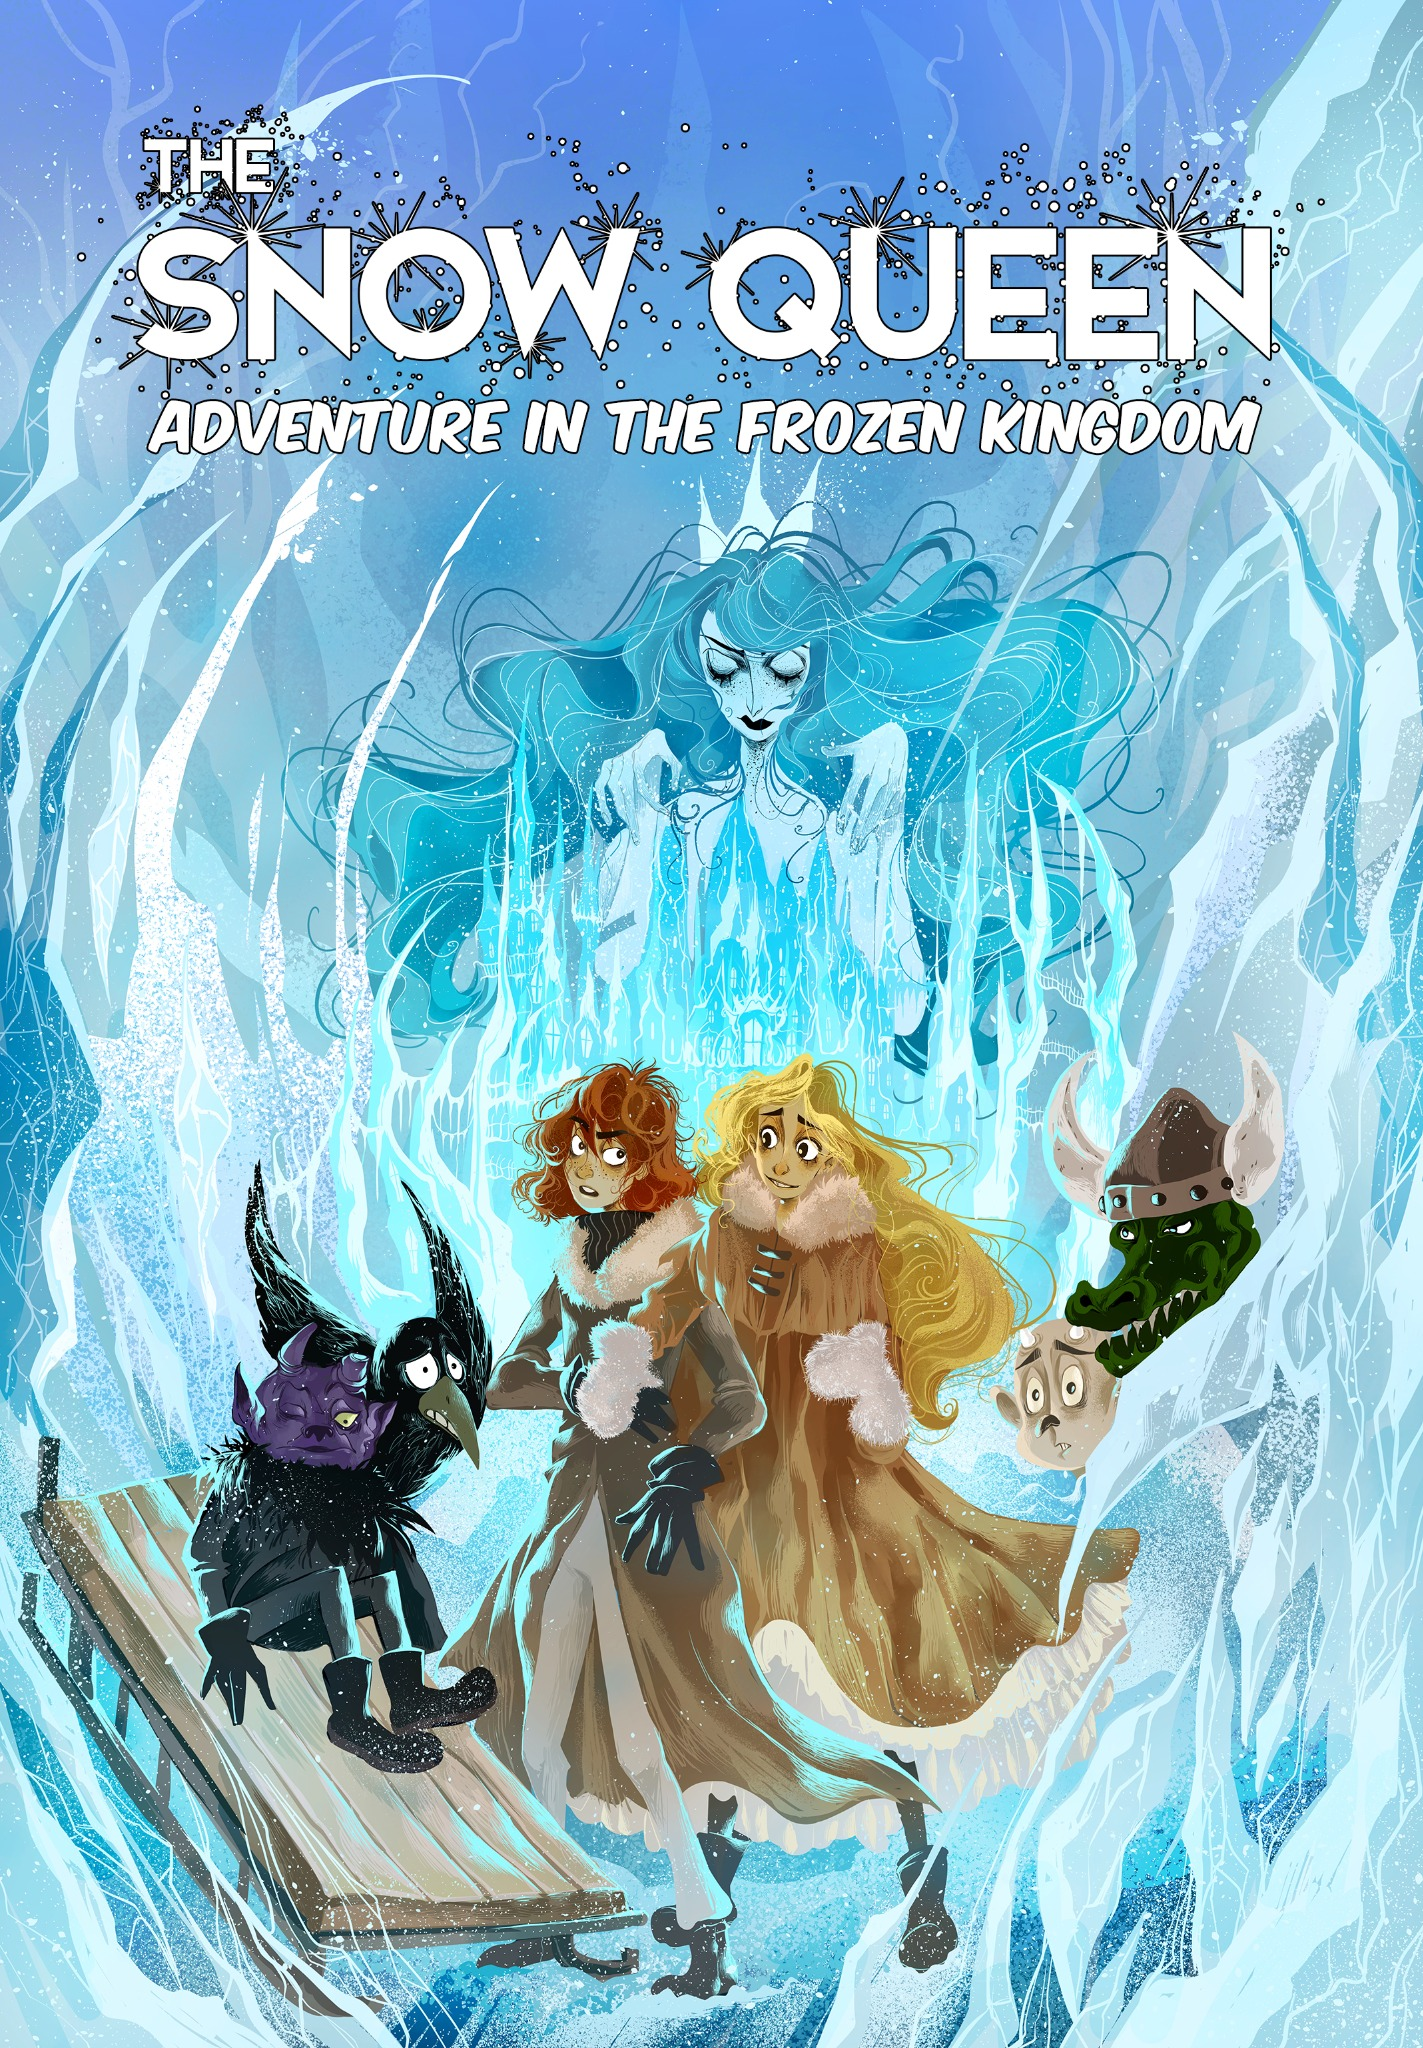 The Snow Queen: Adventure in the Frozen Kingdom